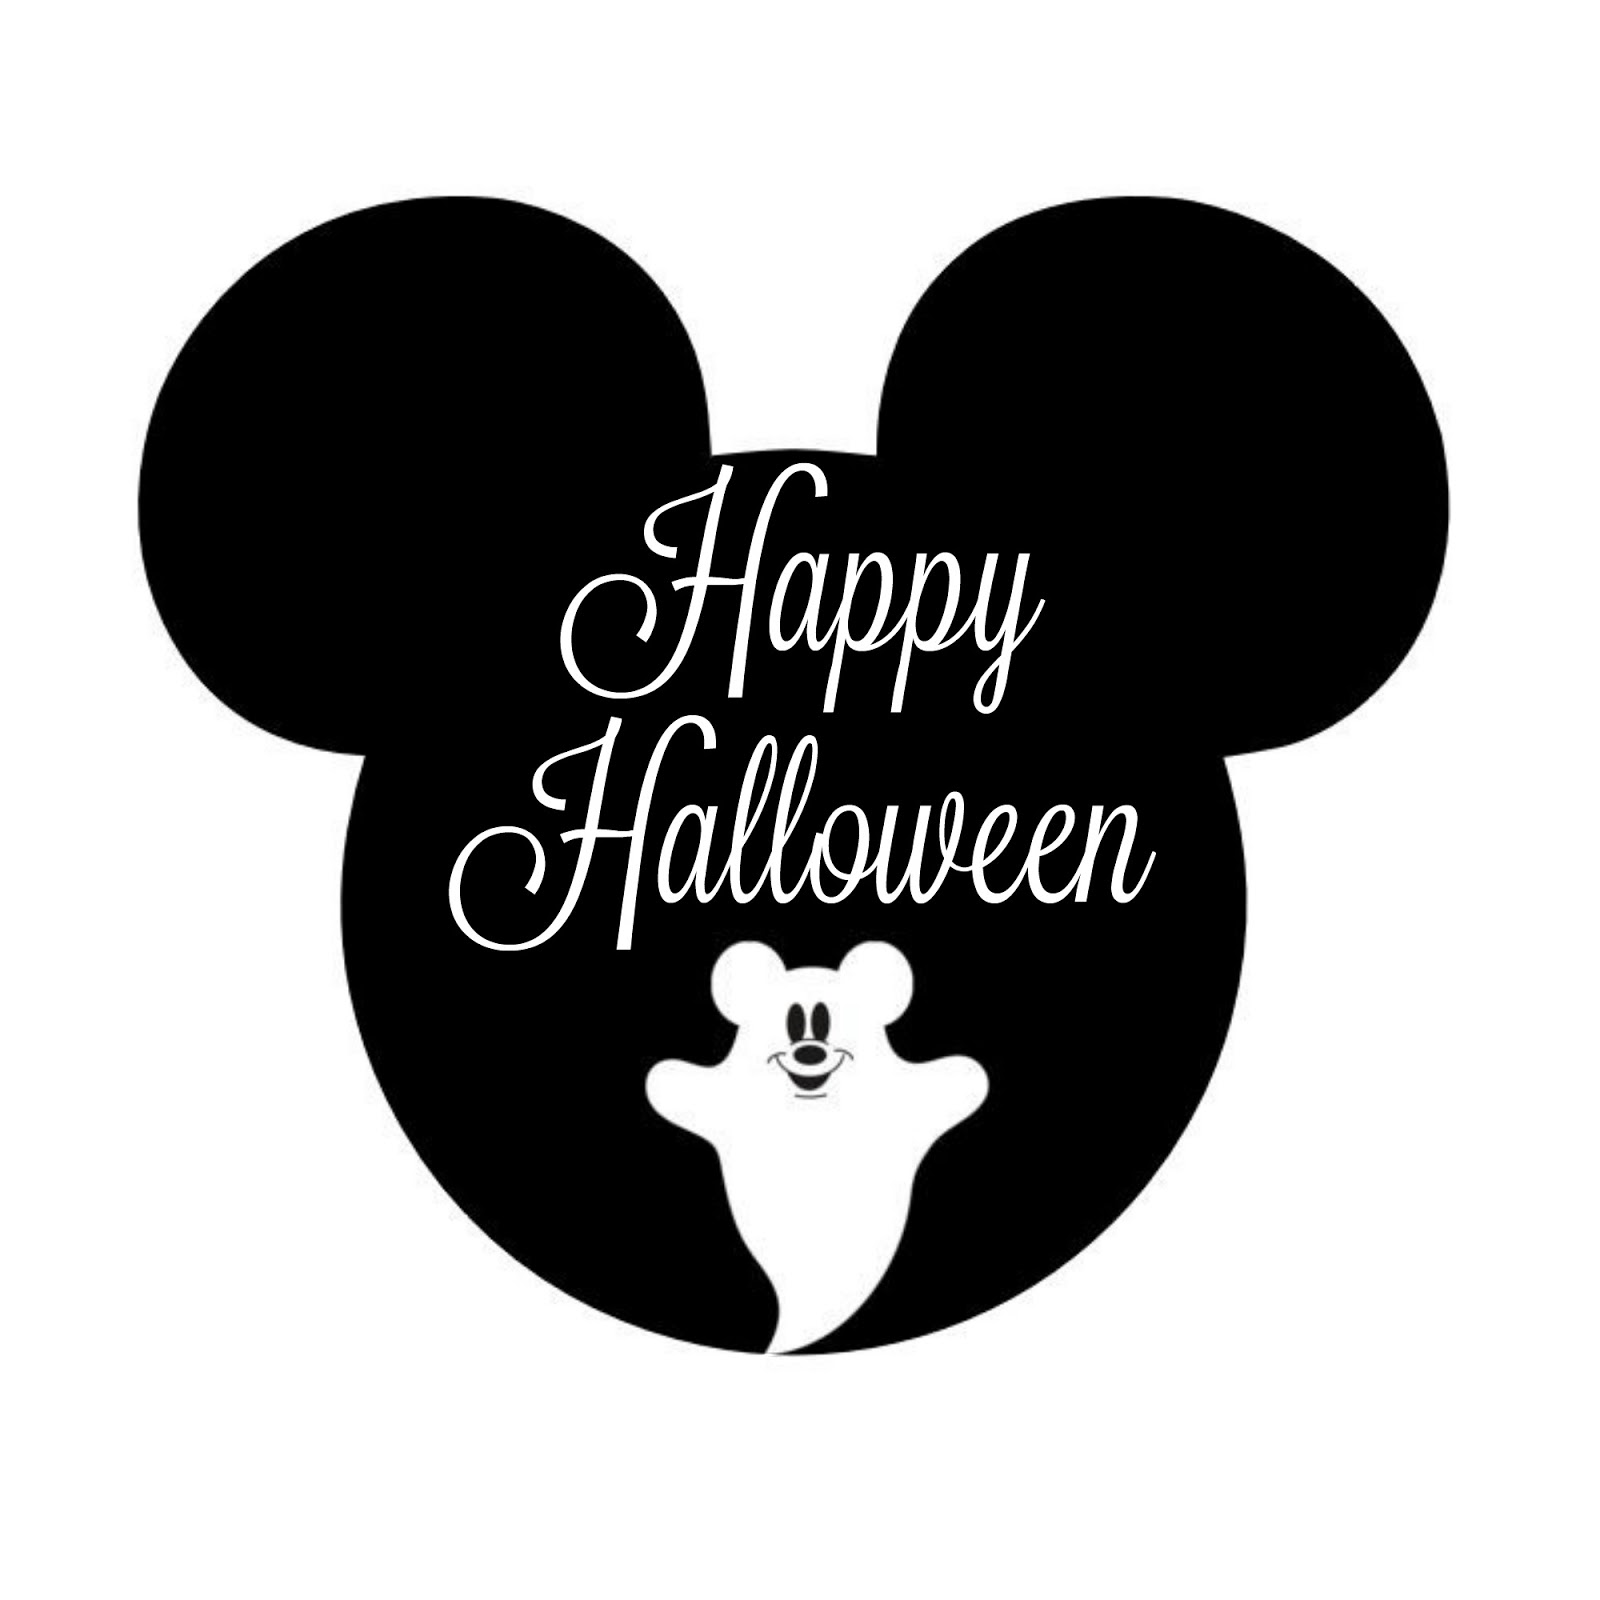 Download 7 Kids and Us: Free Halloween Mickey SVG File for Cricut Users